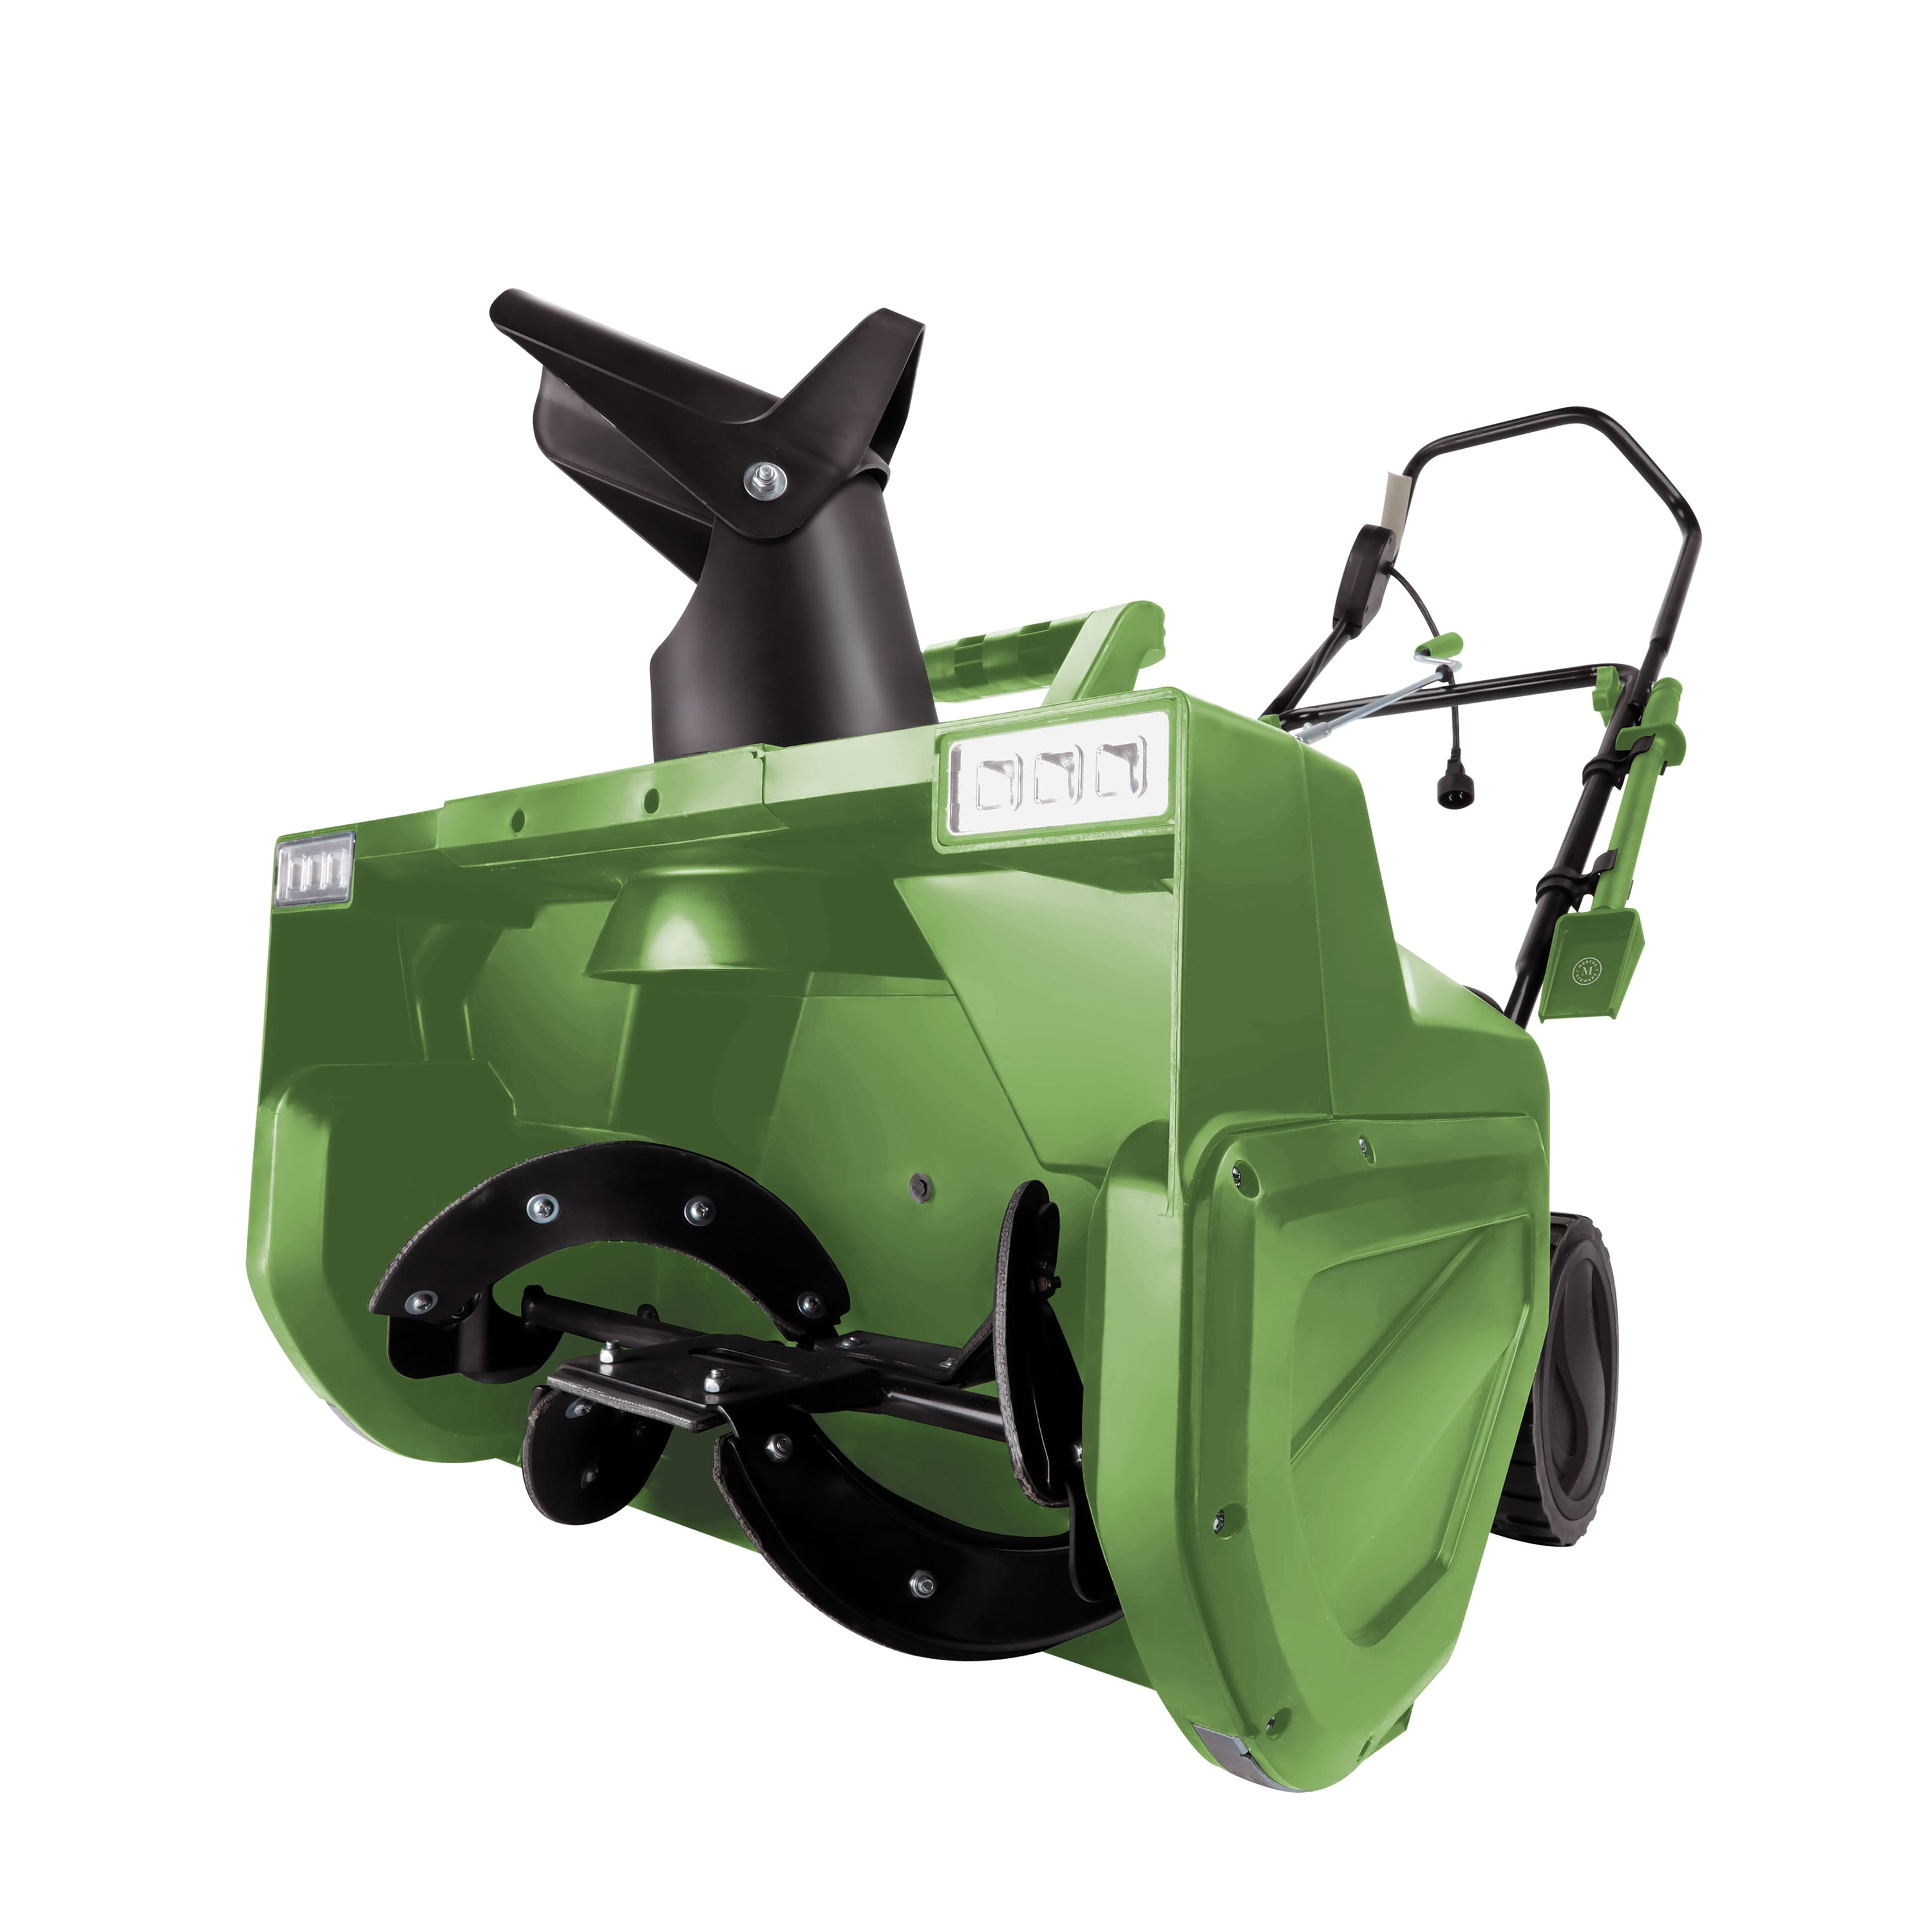 "Snow Joe 22"" 15 amp corded electric snow blower with steel auger and LED lights : $126 shipped (retail $250)"